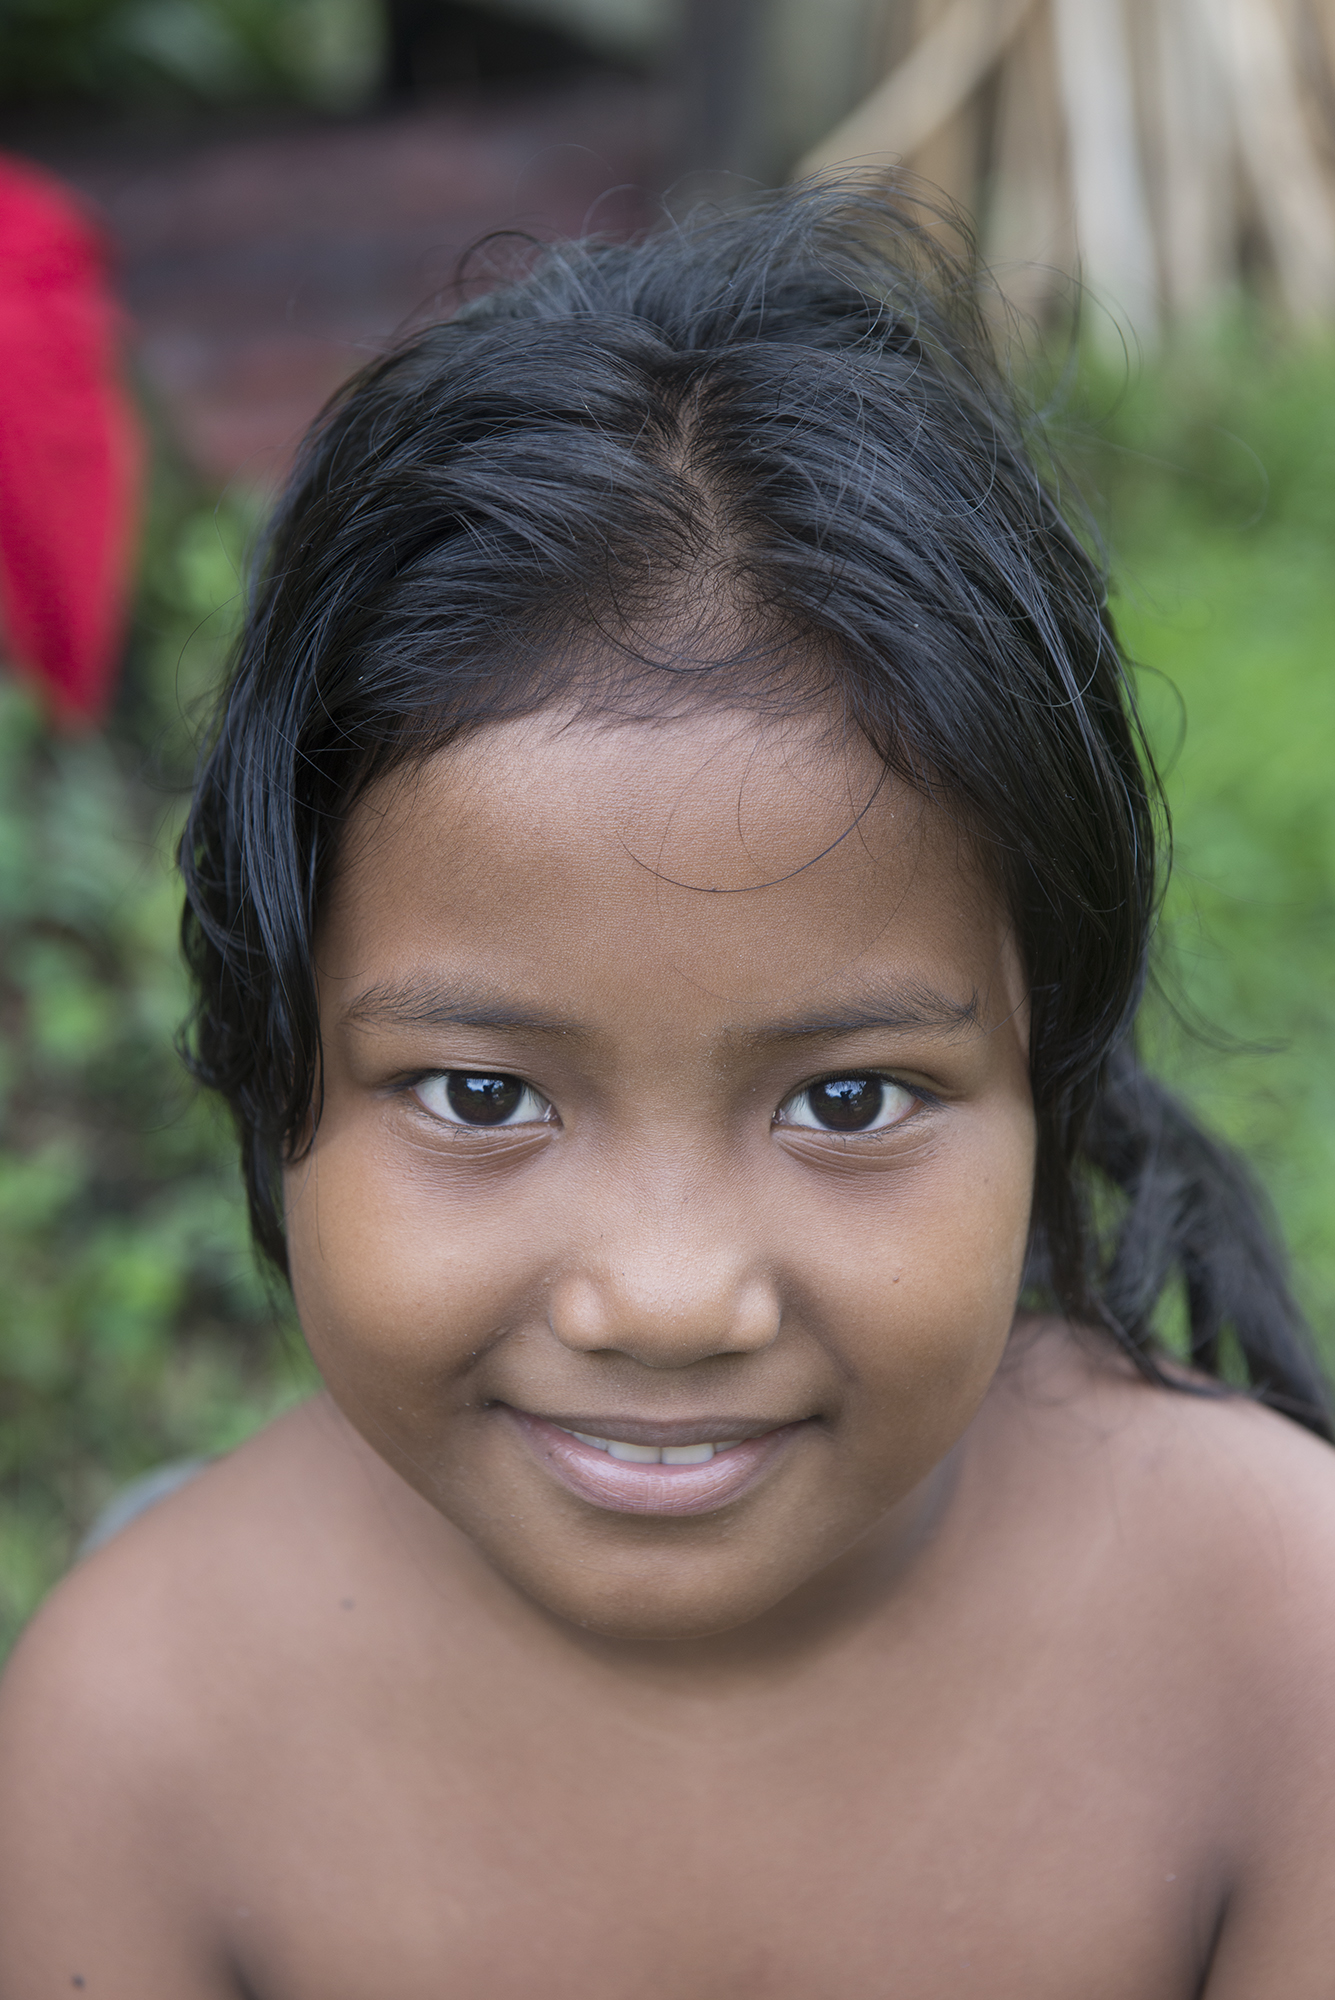 <p>This girl's family is from Chuuk. Her family patriarch, Sam Saul, moved to Pohnpei as a young man after a storm devastated his home island.</p>